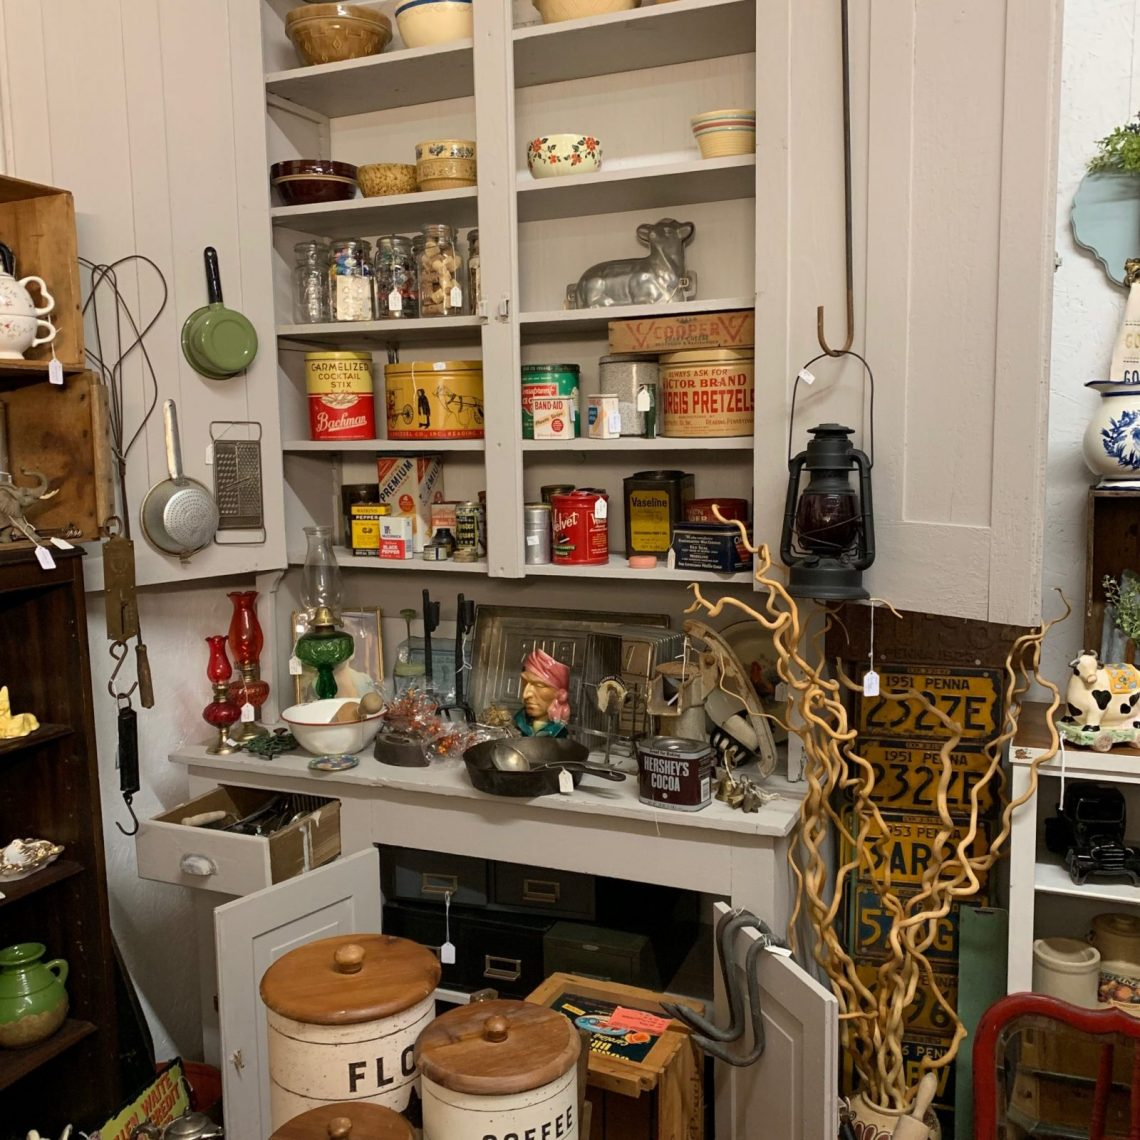 an assortment of antique kitchen items